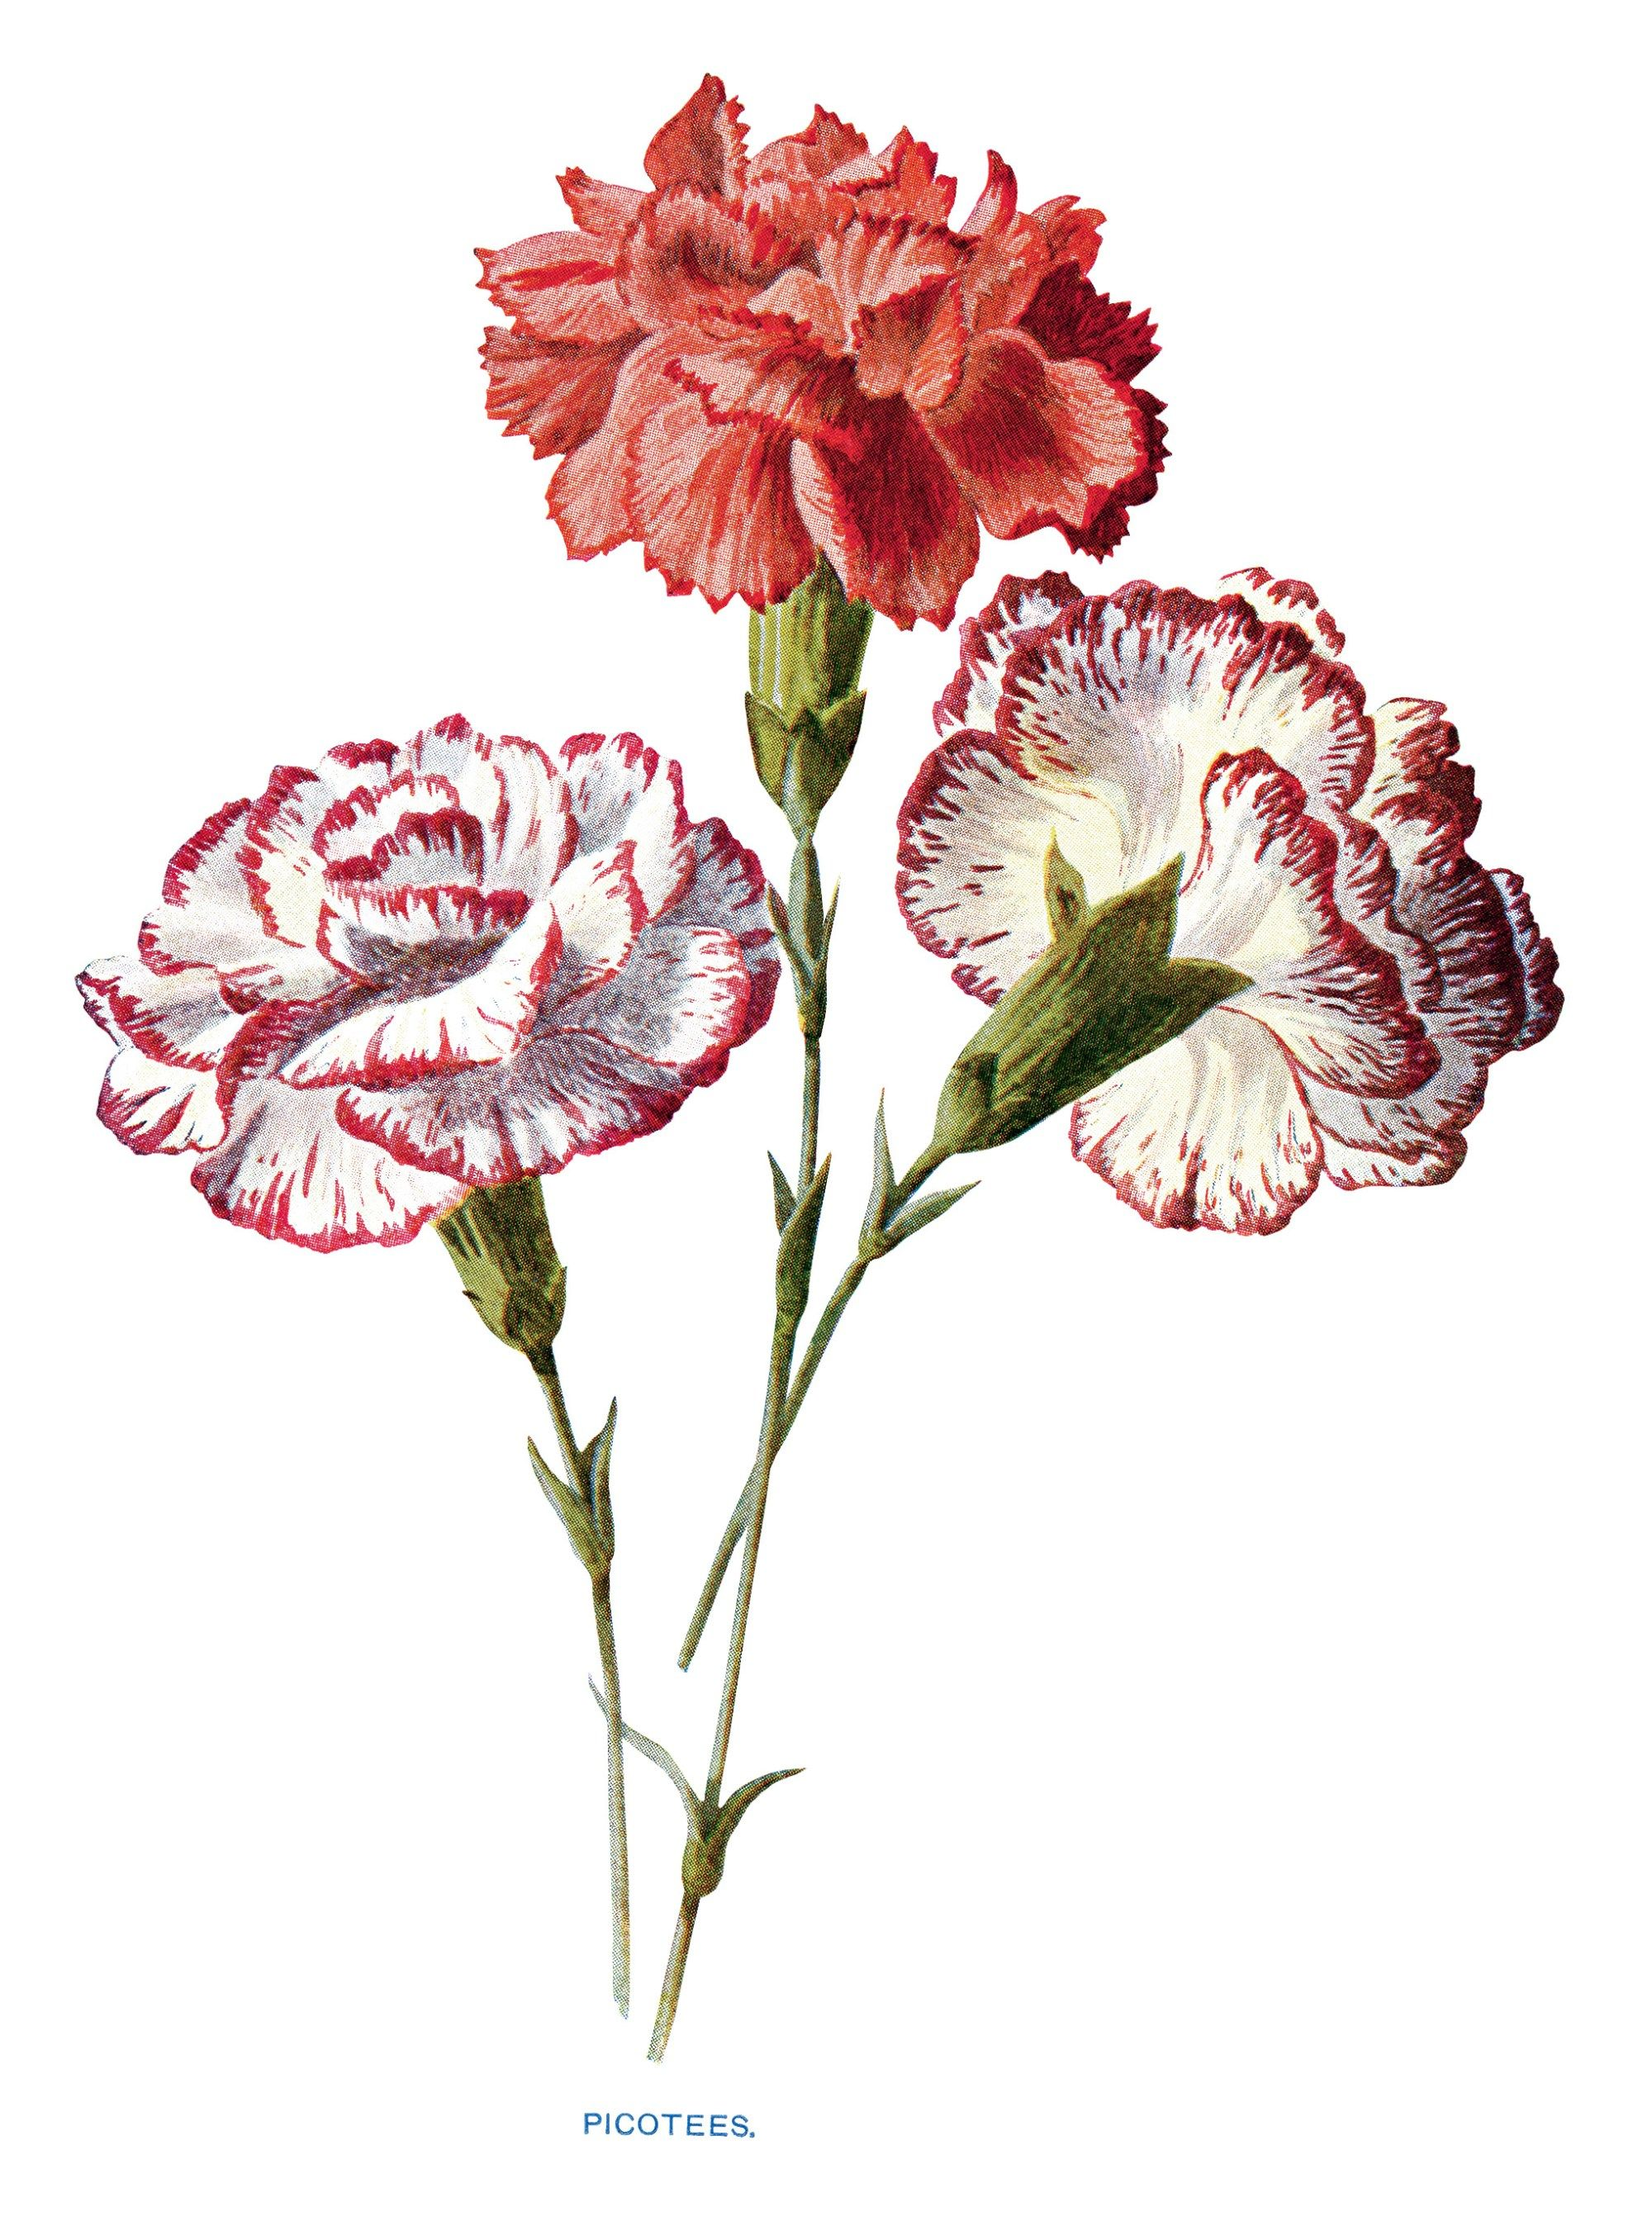 free vintage carnation clip art red white picotees flower.